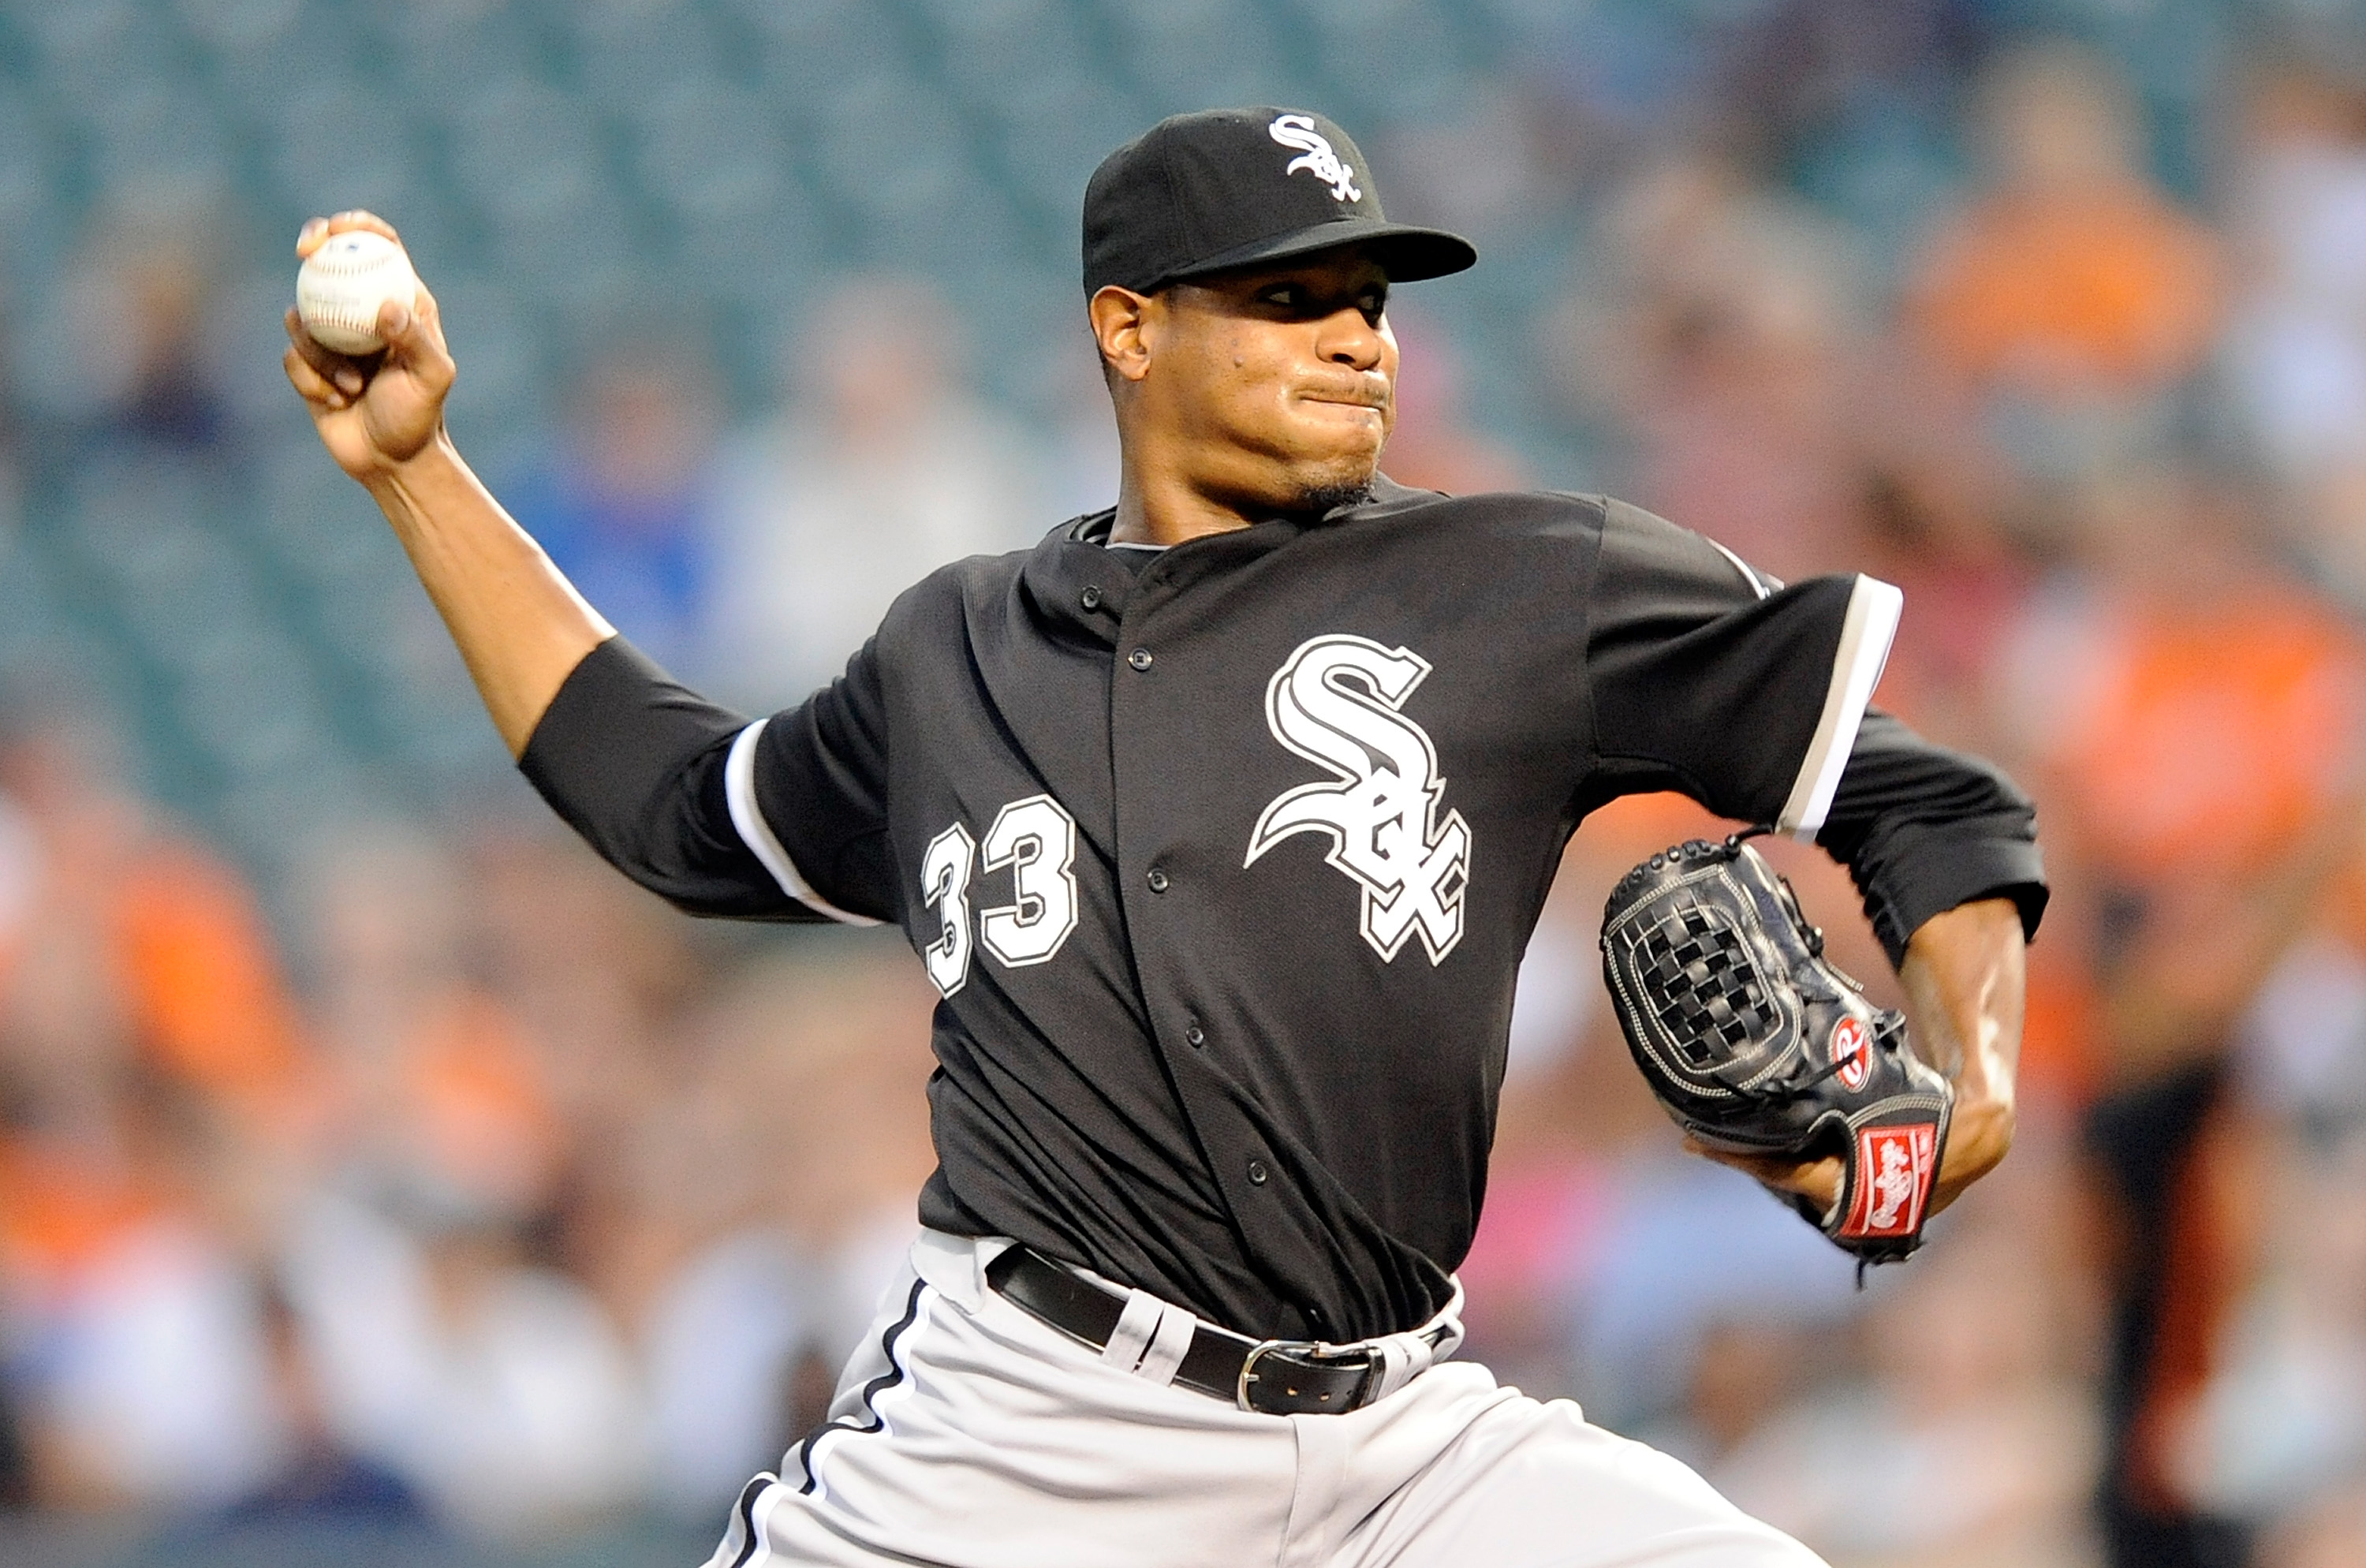 BALTIMORE - AUGUST 09:  Edwin Jackson #33 of the Chicago White Sox pitches against the Baltimore Orioles at Camden Yards on August 9, 2010 in Baltimore, Maryland.  (Photo by Greg Fiume/Getty Images)